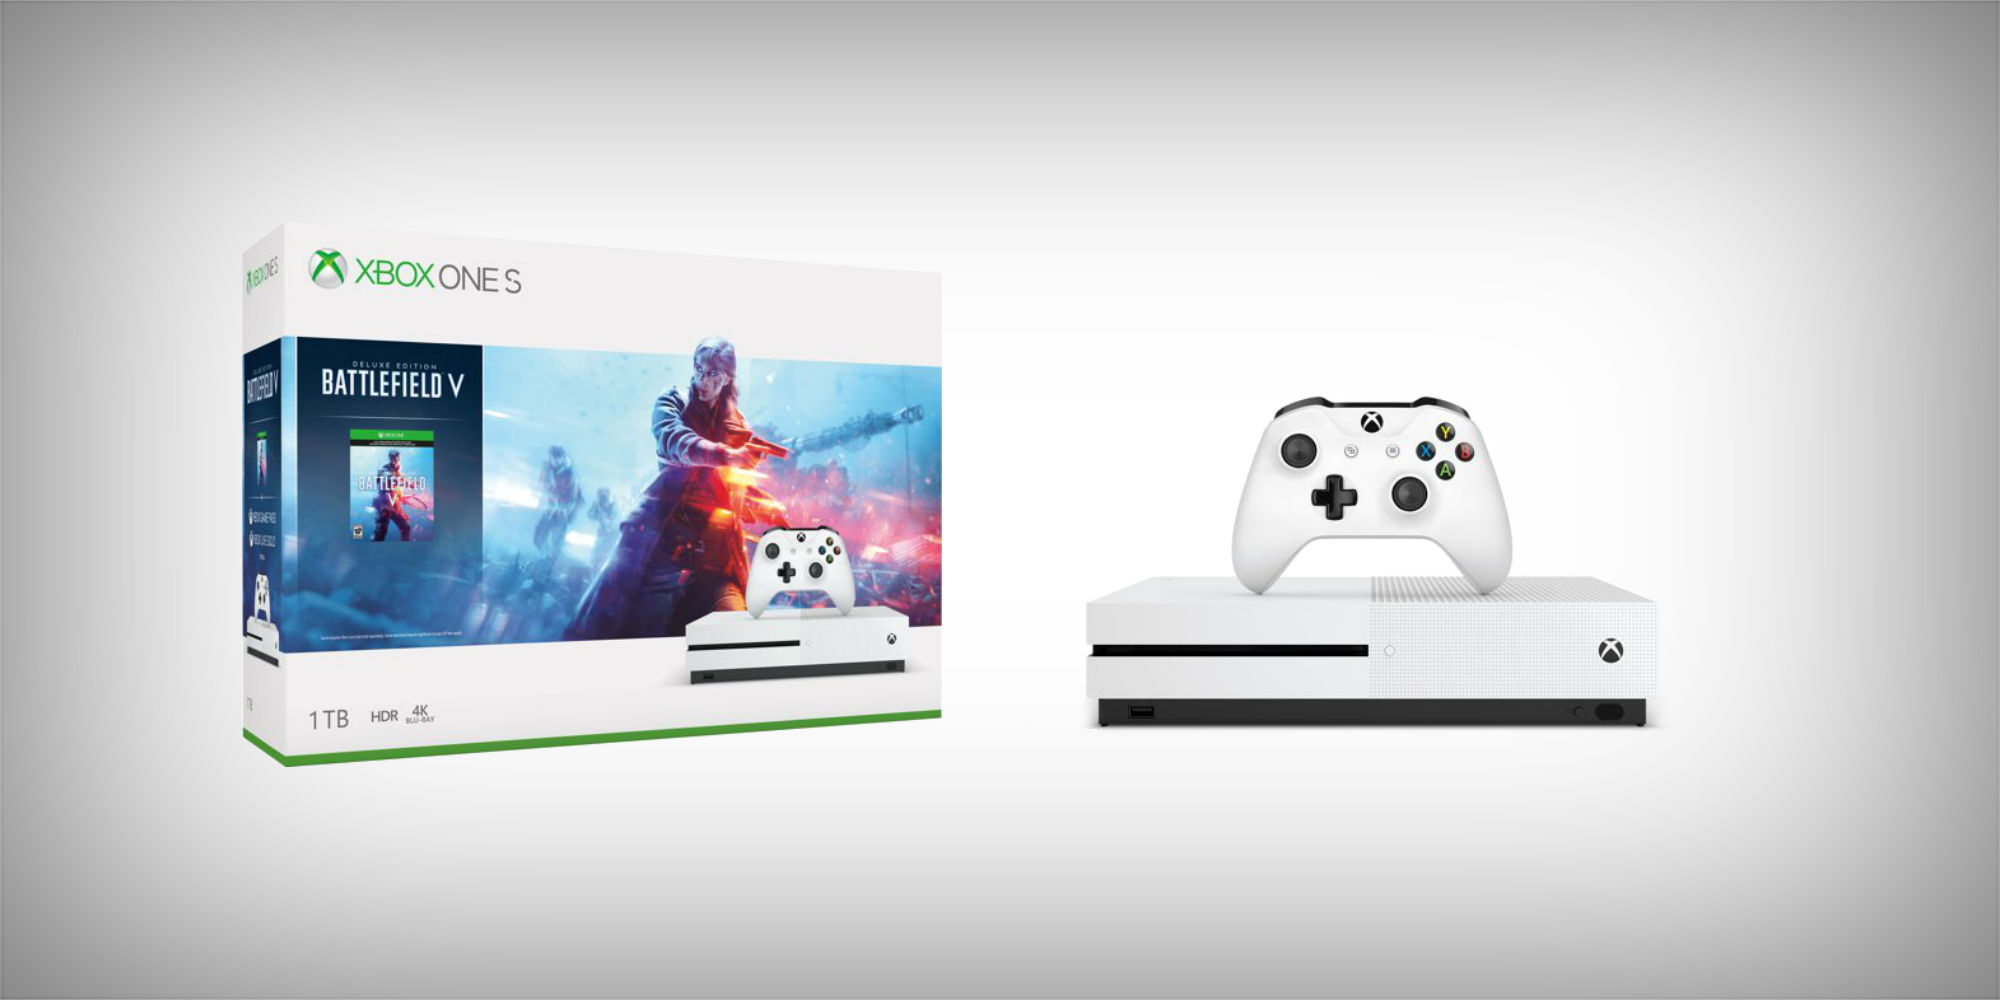 Xbox One S combi pack